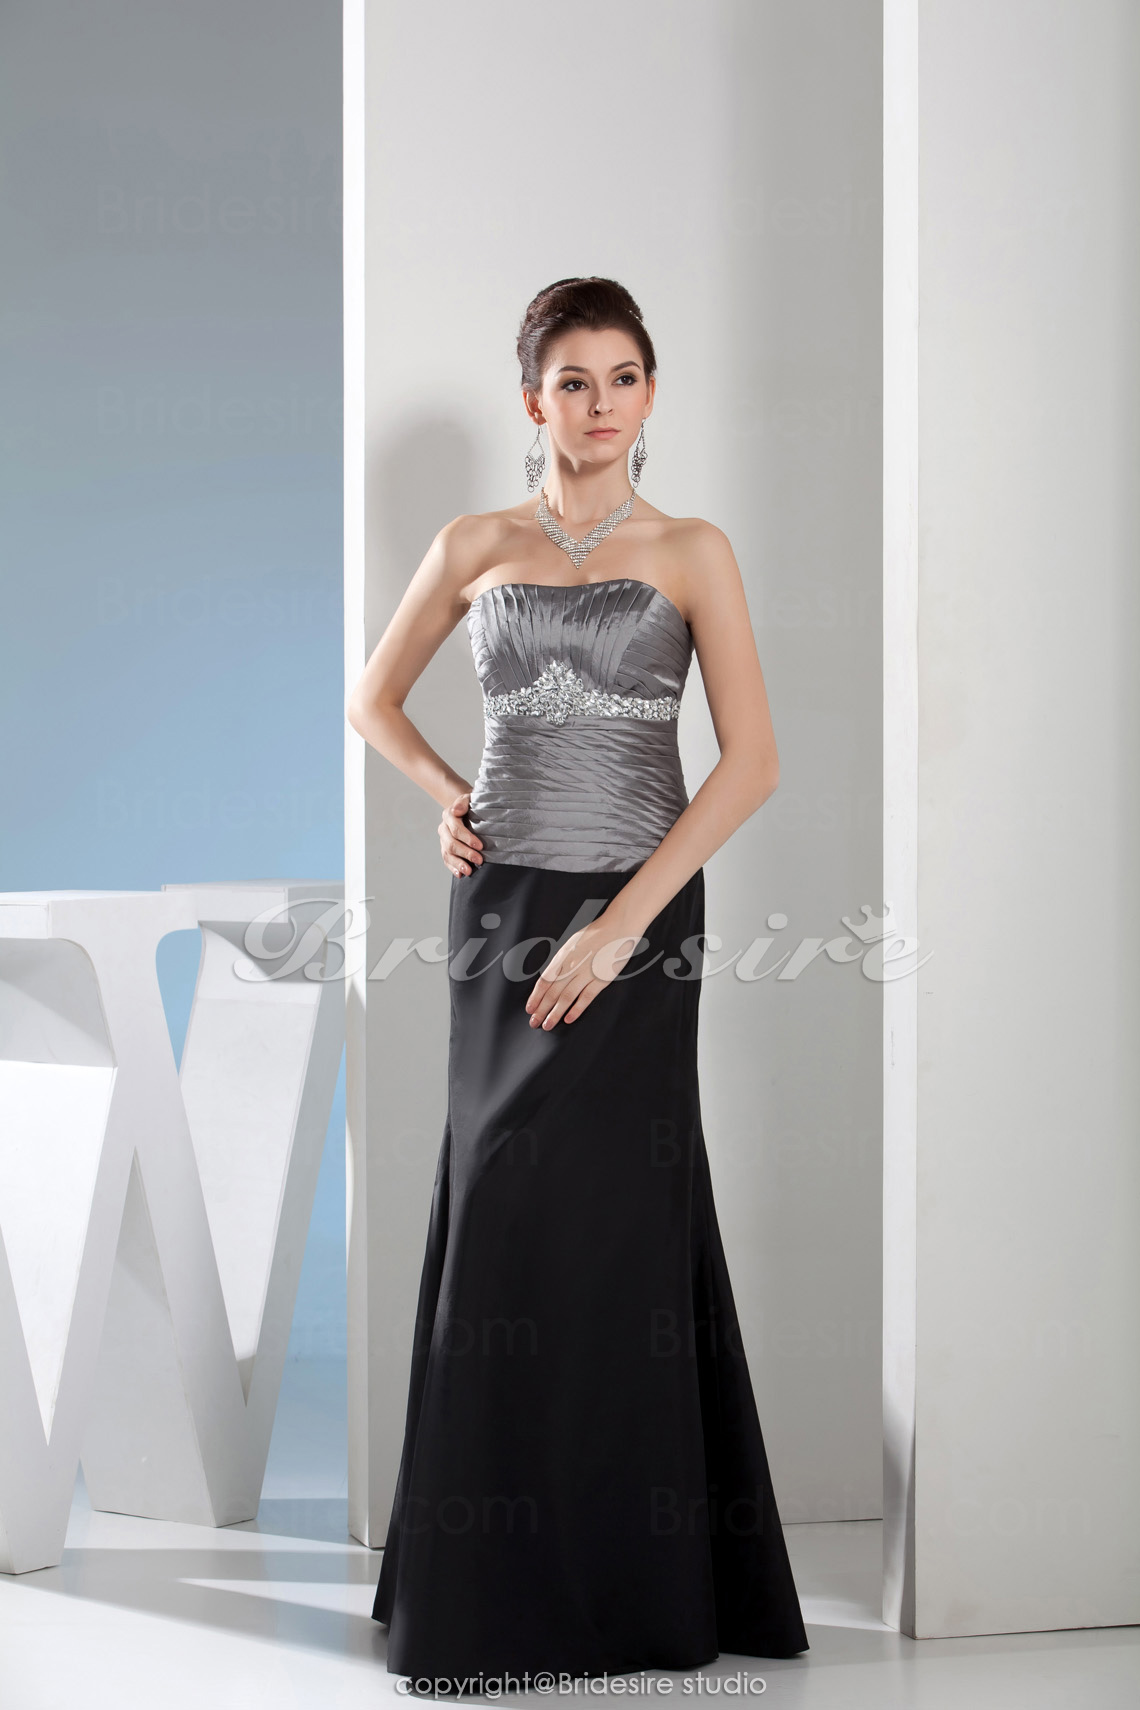 Trumpet/Mermaid Sweetheart Floor-length Sleeveless Satin Mother of the Bride Dress